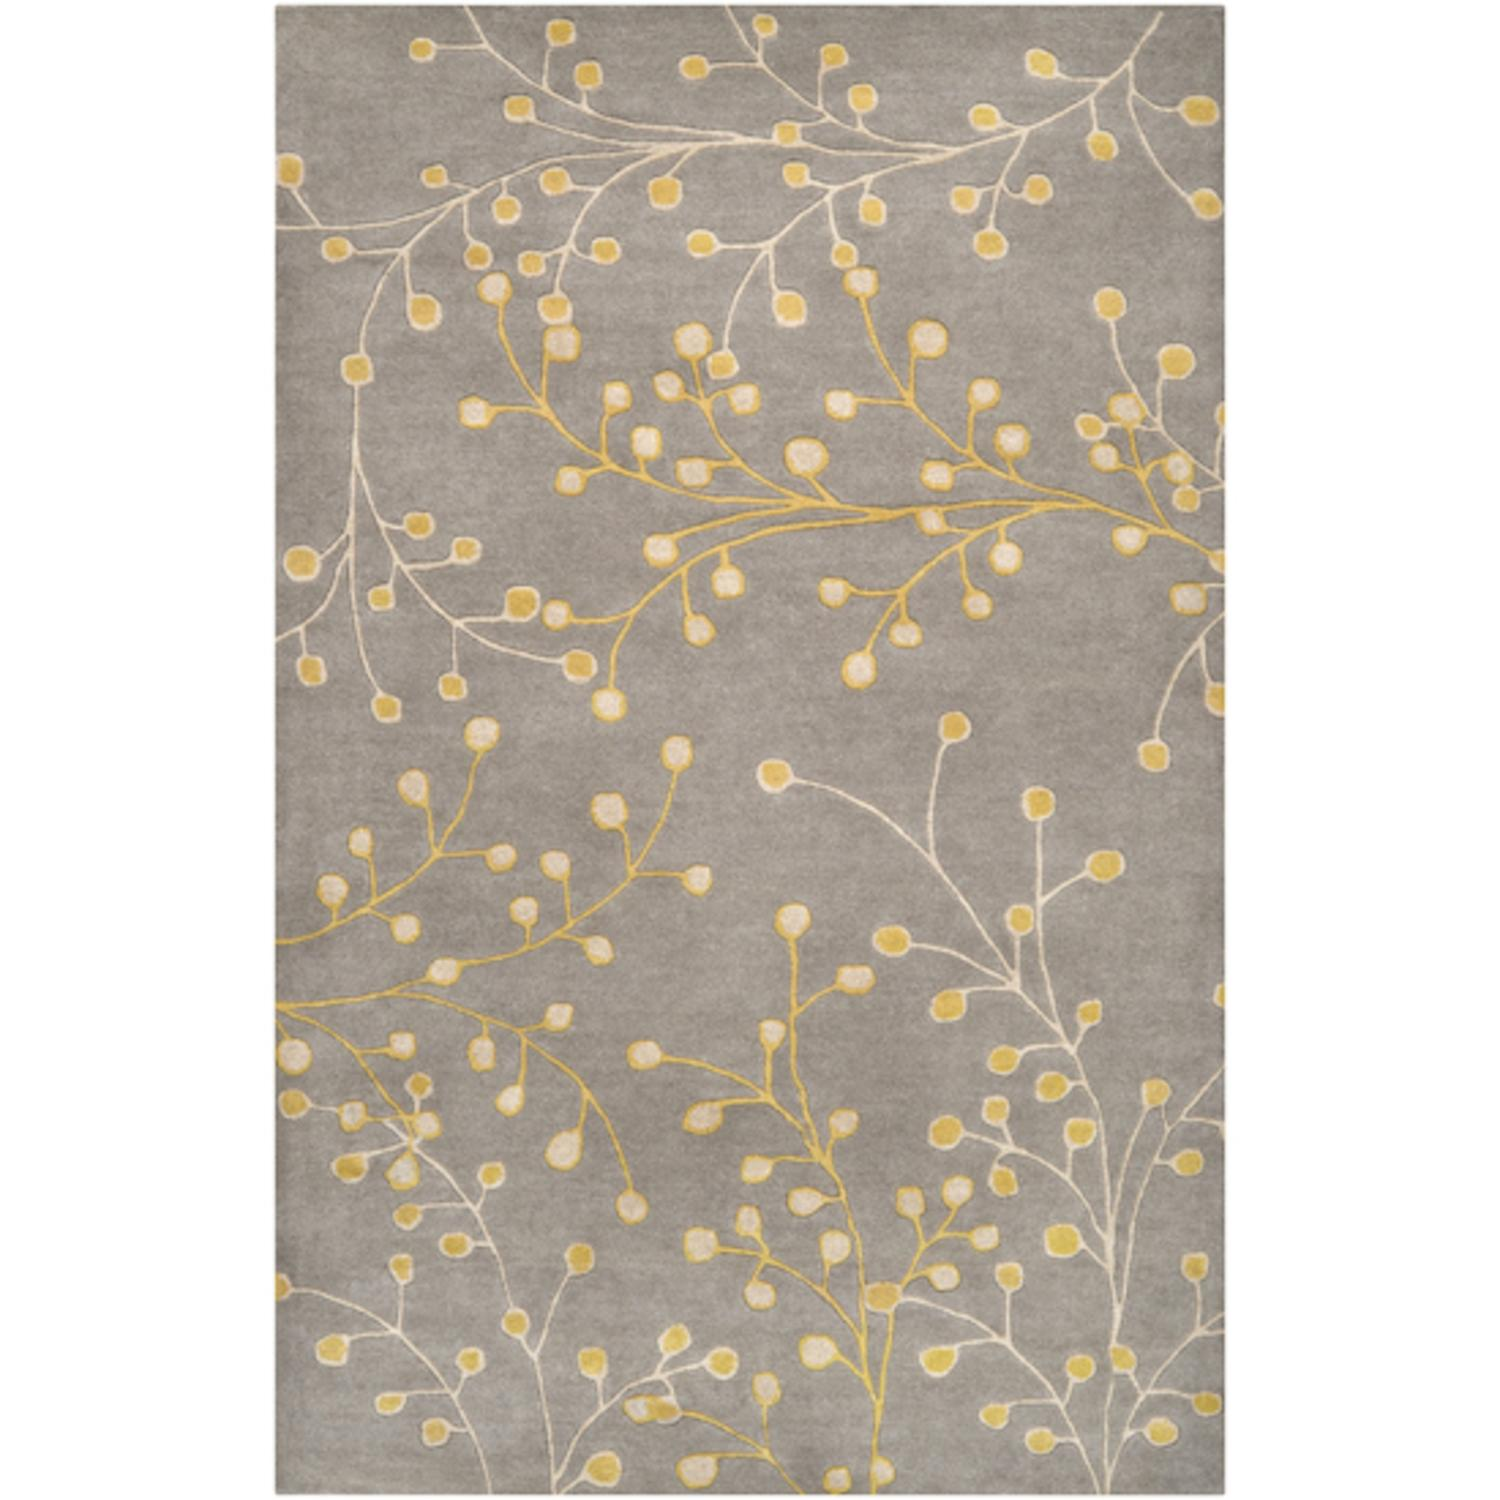 4' x 6' Fair Enoki Mustard Yellow and Brindle Beige Wool Area Throw Rug